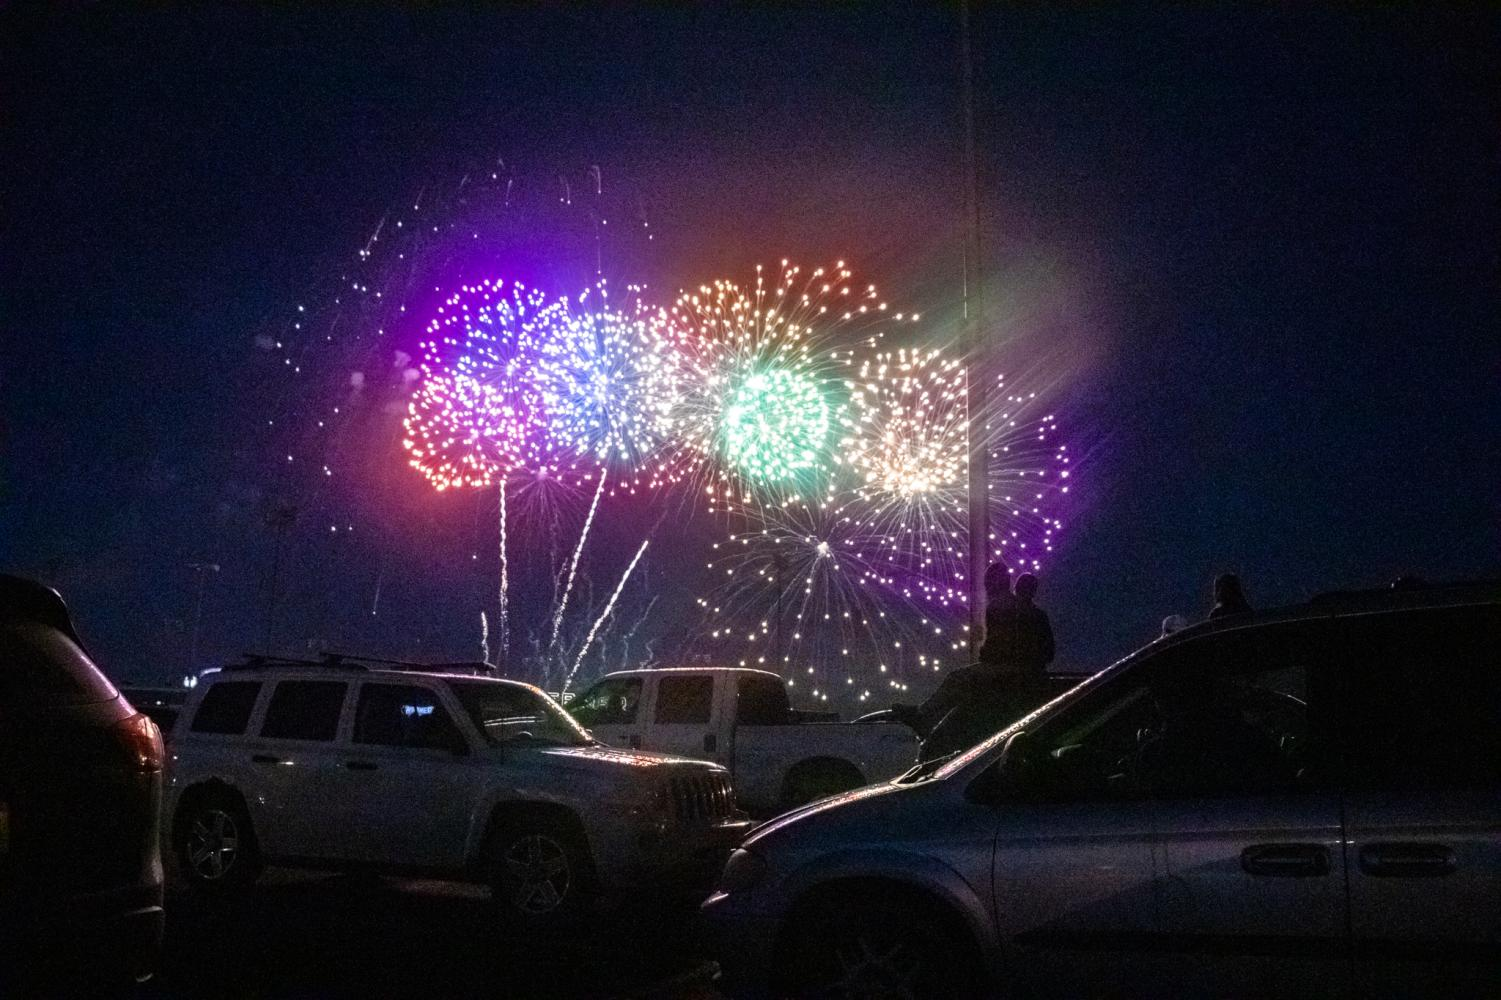 The Grand Finale. Fireworks light up the sky as the show comes to an end.